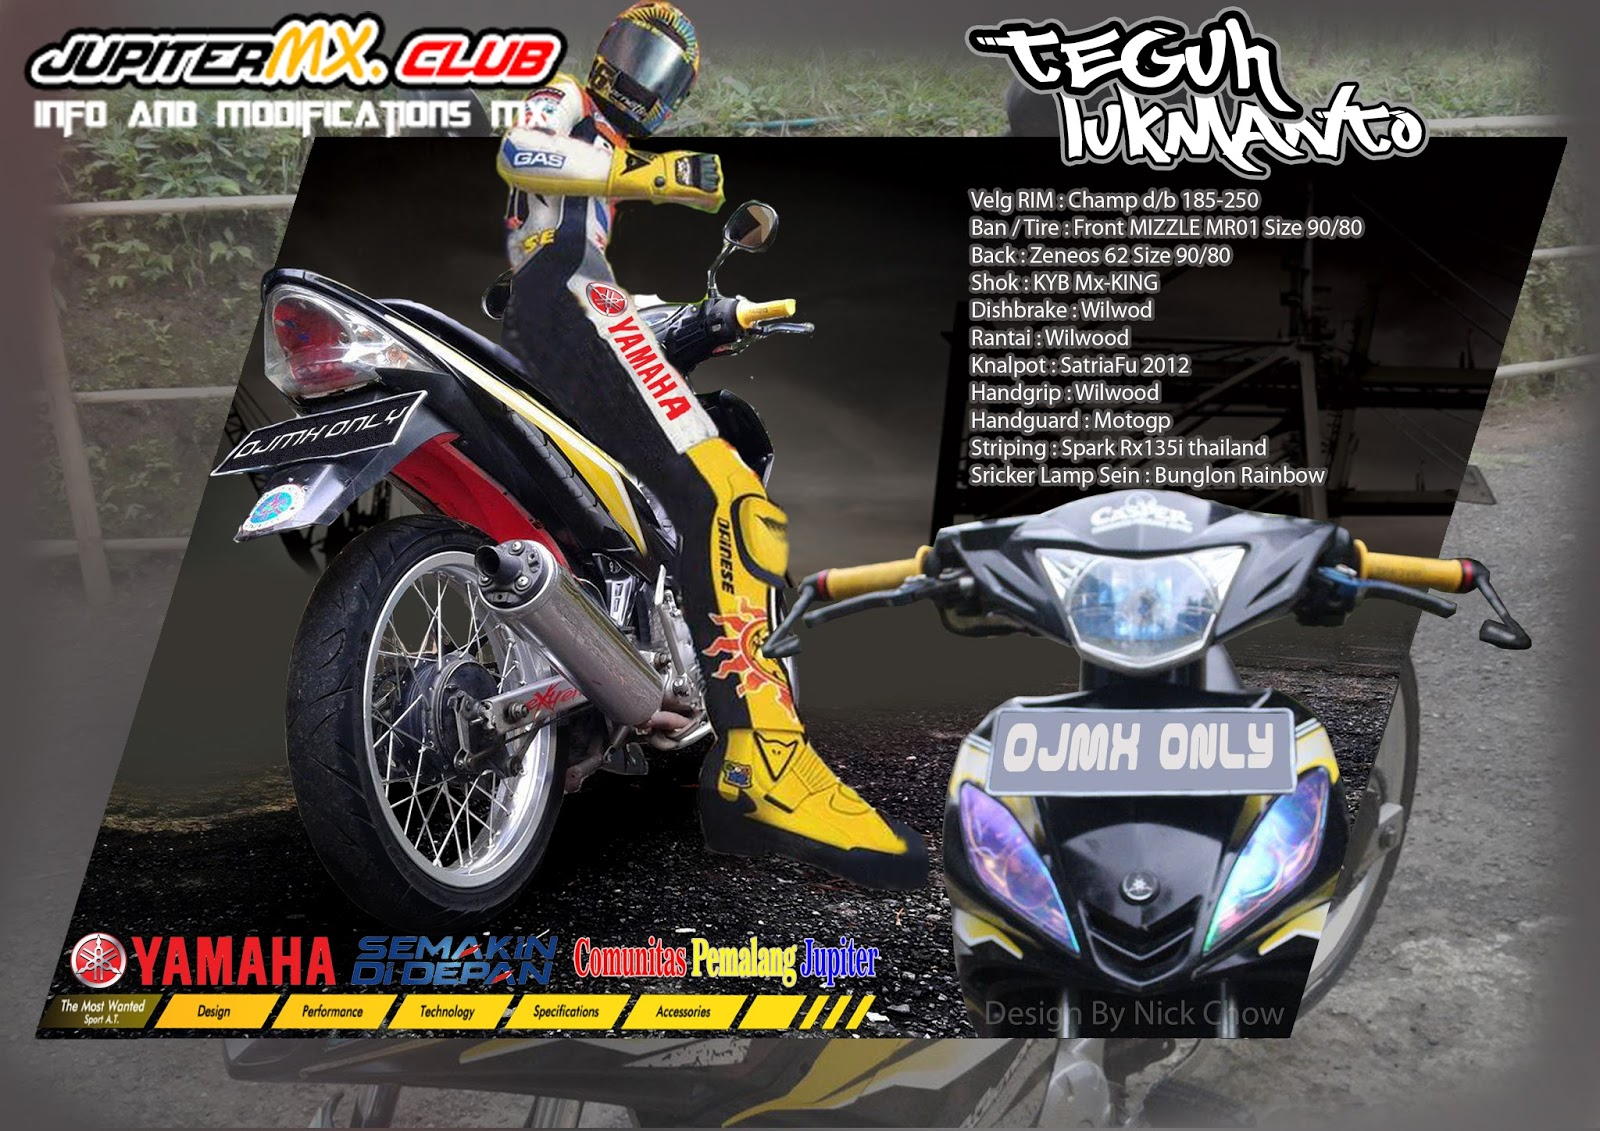 100 Gambar Motor Modifikasi Jupiter Mx King Terbaru Gubuk Sonic 150r Energetic Red Pemalang Old Ojmx 2017 Community